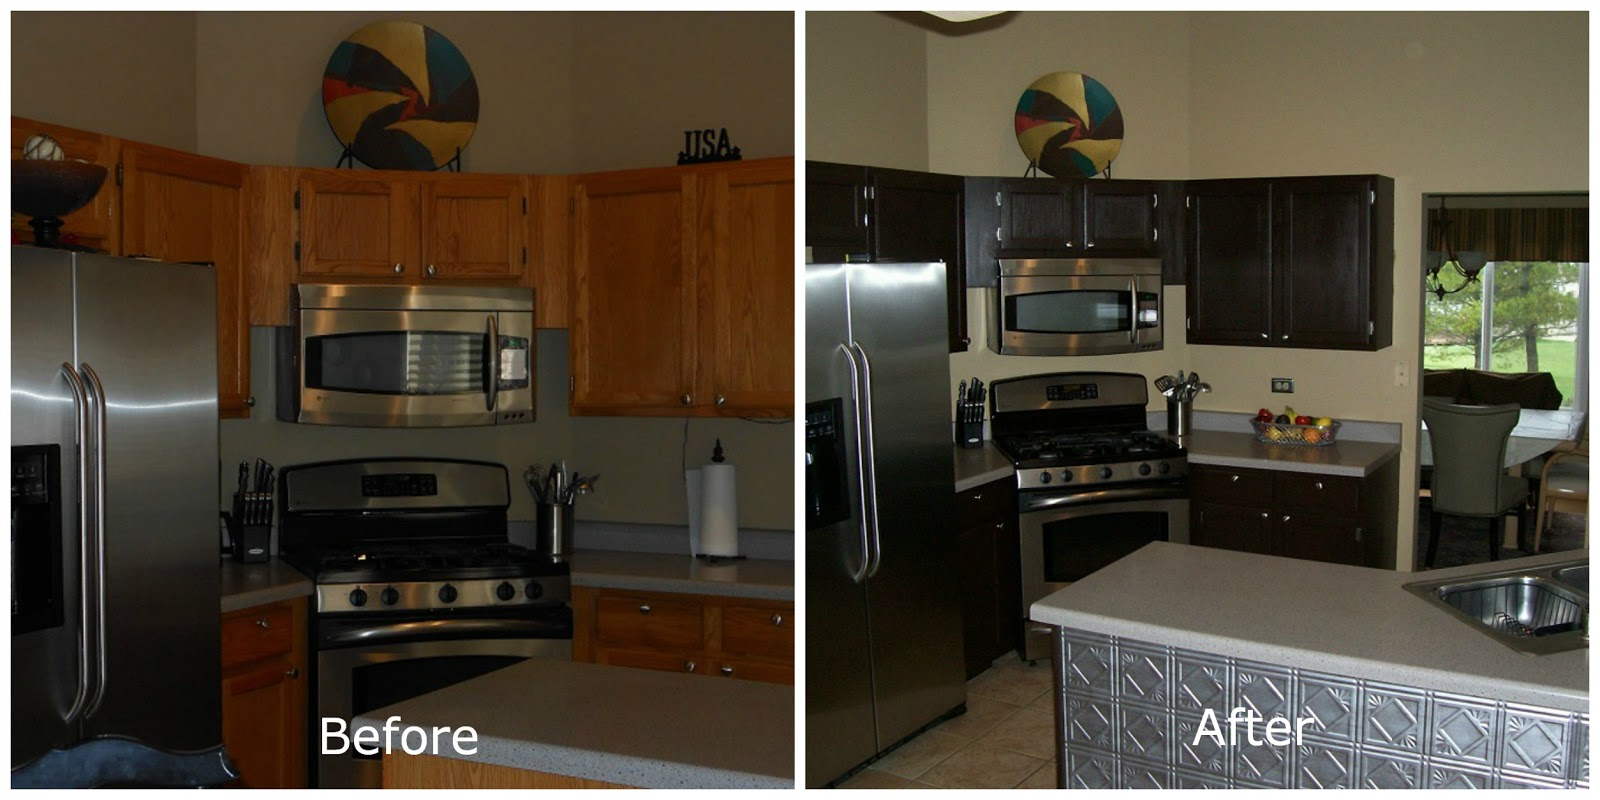 Kitchen Tiles And Splashbacks 5 Ways To Renovate A Kitchen On A Budget Woman Of Style And